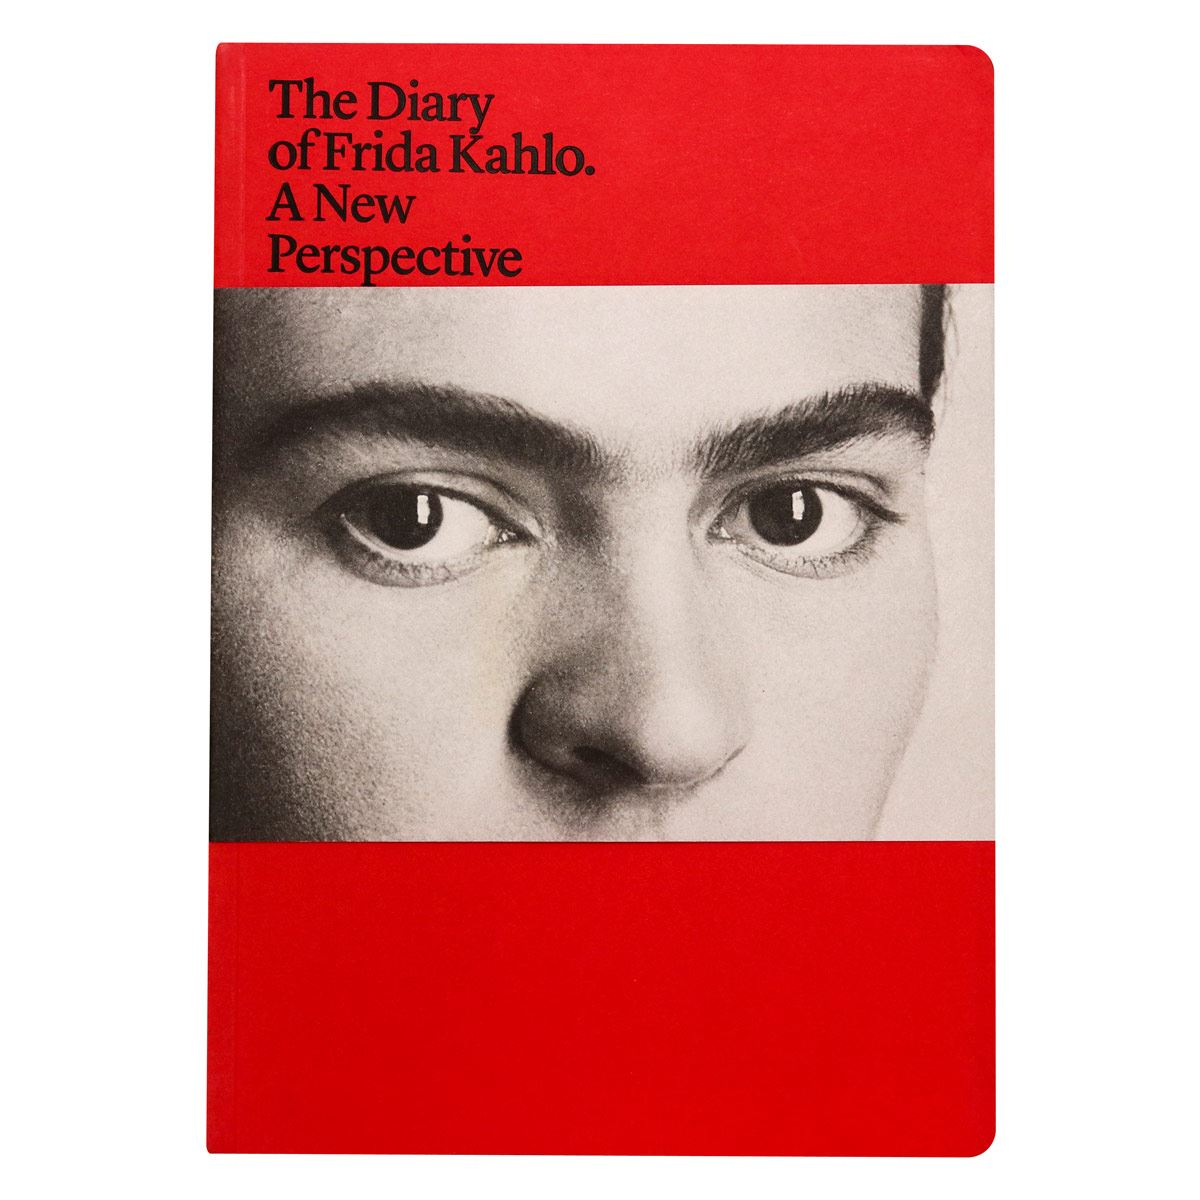 The Diary of Frida Kahlo. A New Perspective